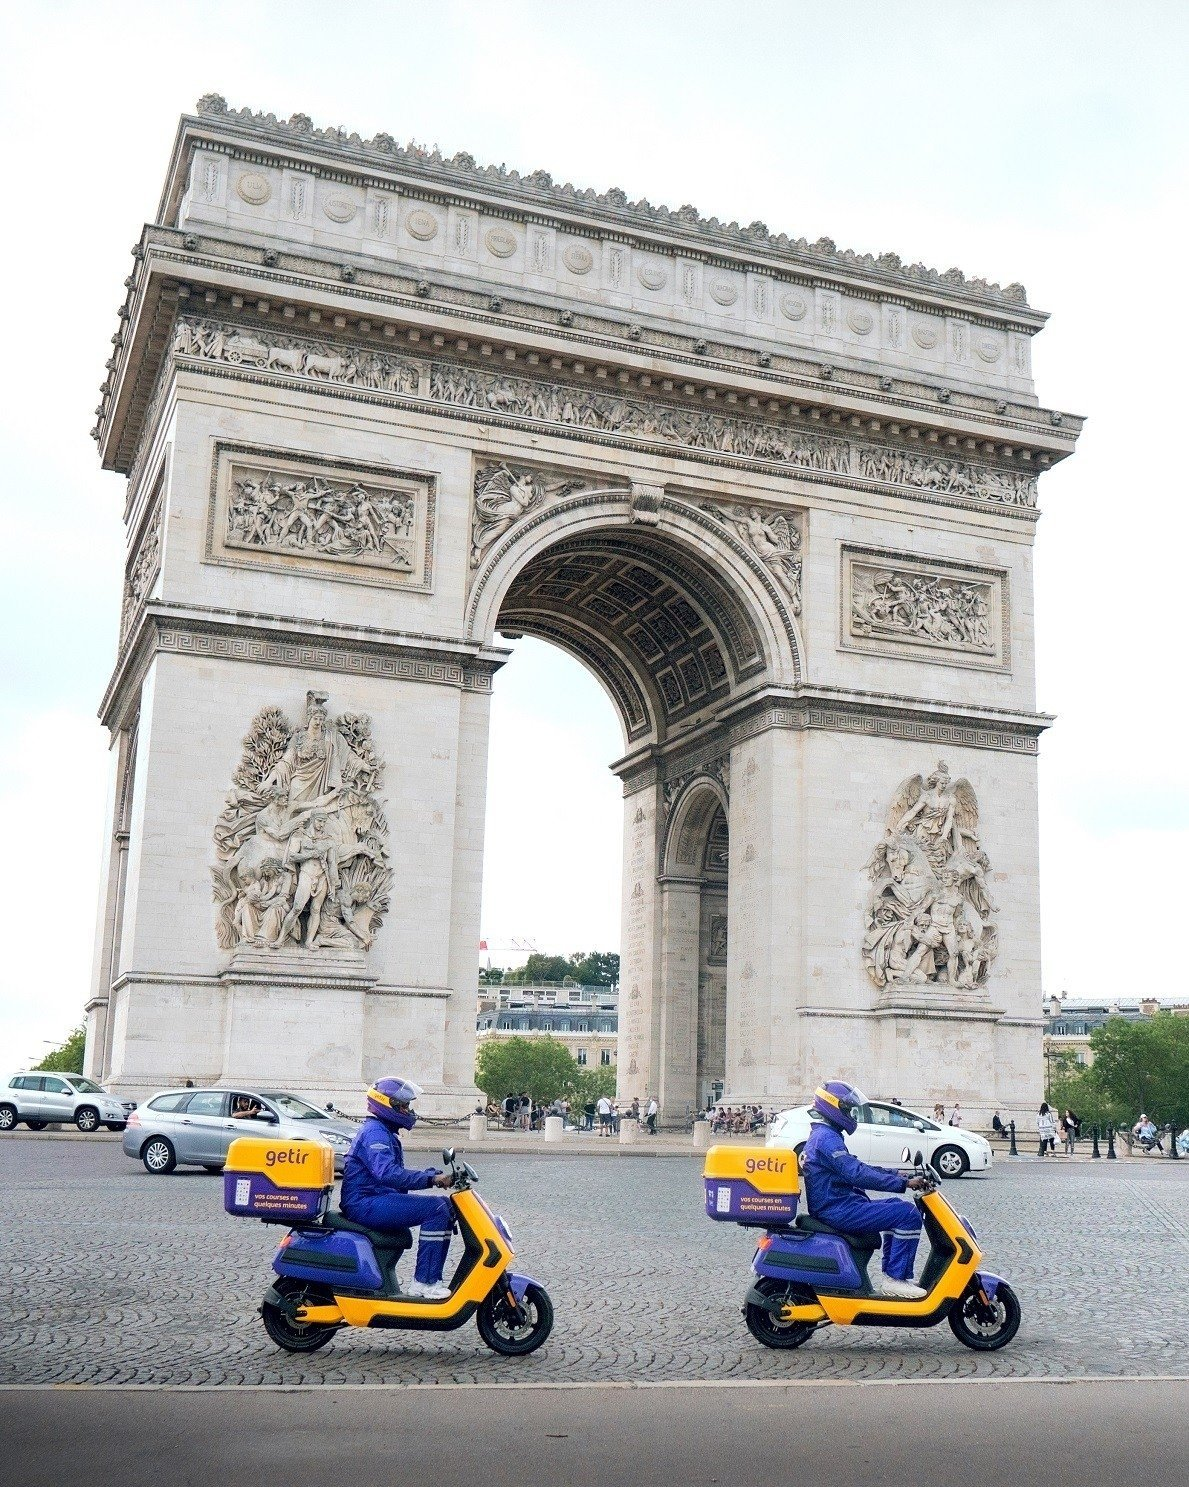 Getir couriers pass by the Arc de Triomphe on Champs Elysees avenue in Paris, France, June 22, 2021. (IHA Photo)